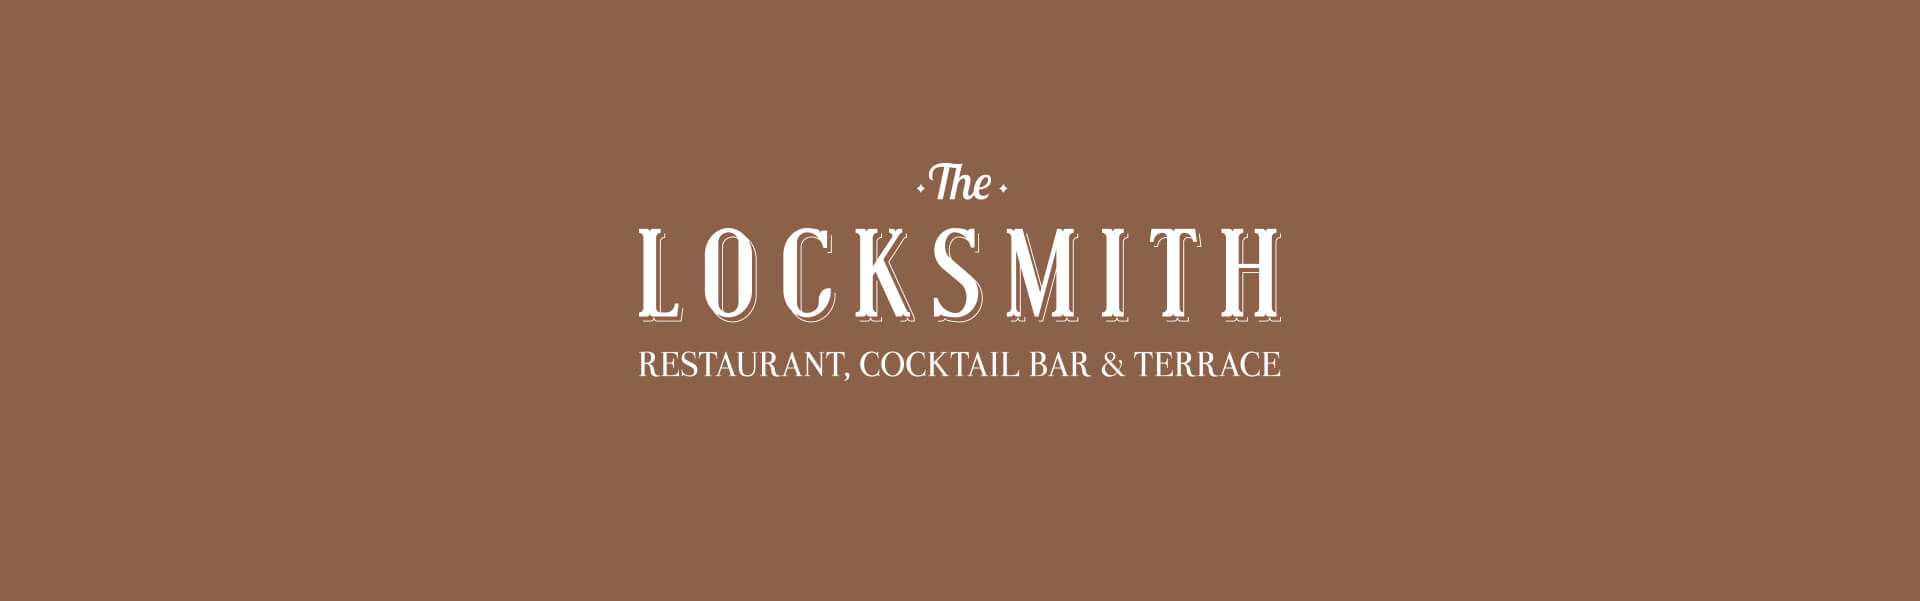 The Locksmith Logotype